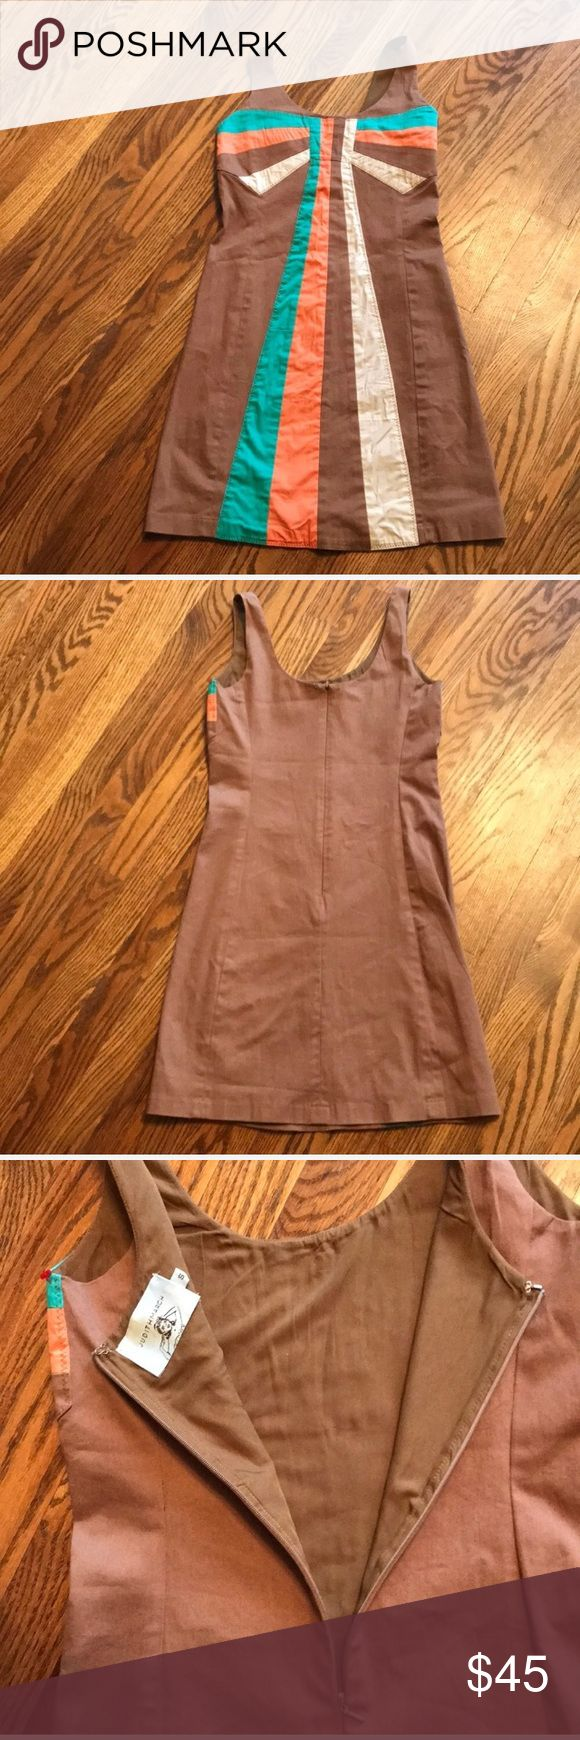 Judith March dress Size small, nwot. No stains or holes. Has zipper and a hook/eye closure. Zipper works great. Would look super cute with heels that are posted in my closet!   Smoke free Make a bundle to receive a private discount!  Price is always negotiable! Judith March Dresses